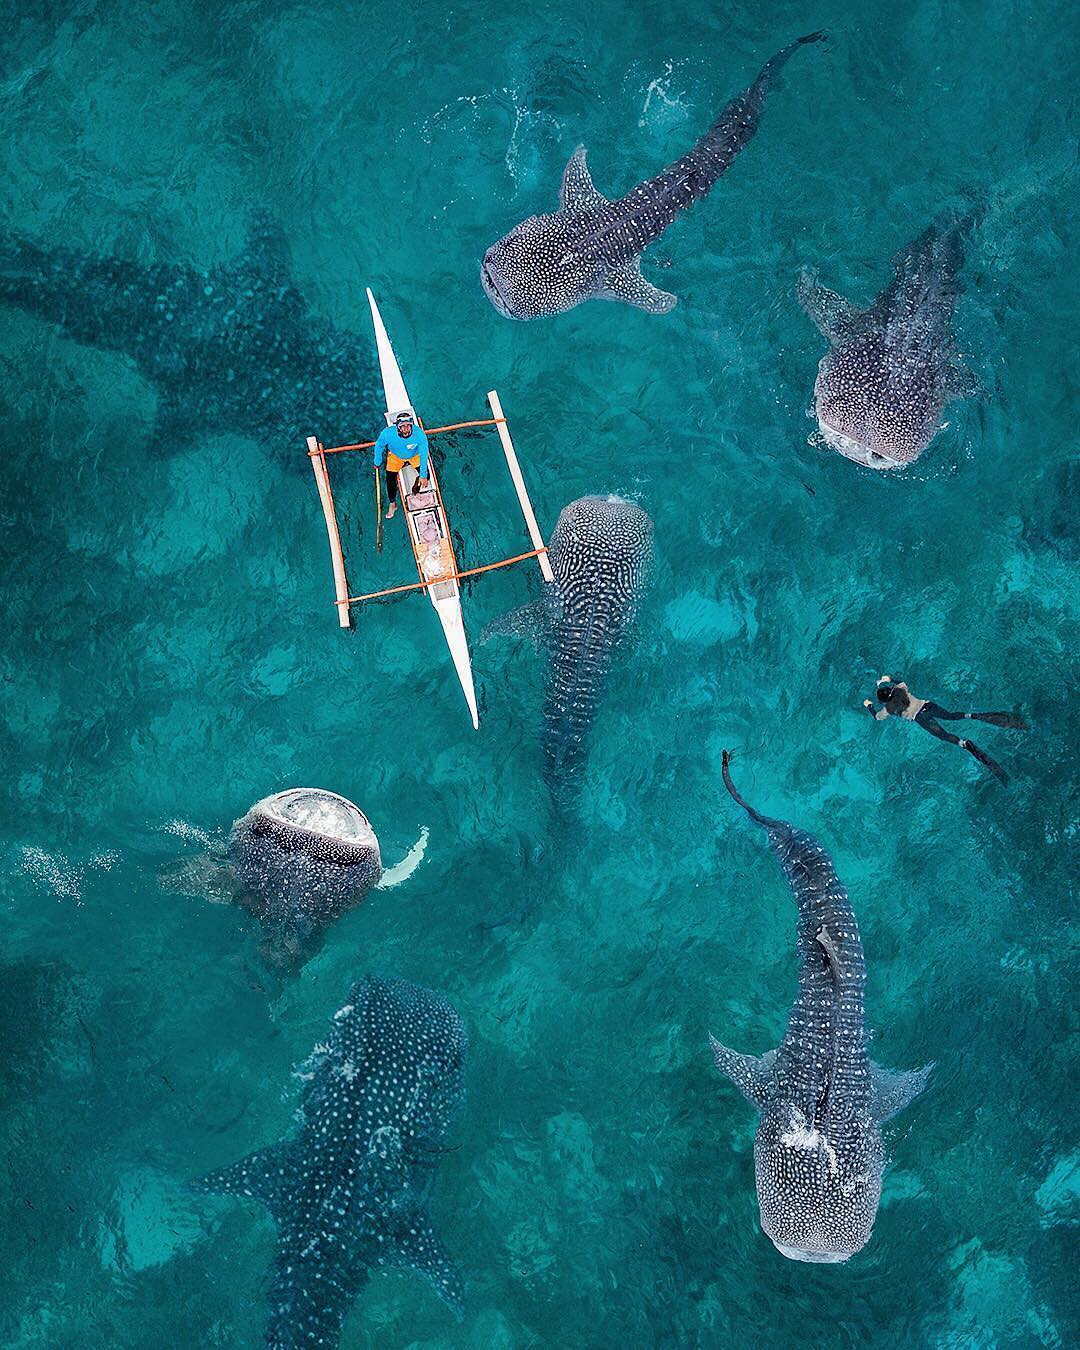 """Check out this week's """"Drone Sunday"""" post from From Where I Drone, which shows a shiver of whale sharks being fed by divers off the coast of Cebu Island in the Philippines. In recent years, these friendly sharks have attracted mass tourism to the island; however, several exploitative acts committed by tourists and locals have raised concerns about the animal's welfare and even prompted protective actions from the Philippines Government. Follow From Where I Drone for more amazing drone photography!  9°27'38.6""""N, 123°22'48.8""""E  Source imagery: @karanikolov"""